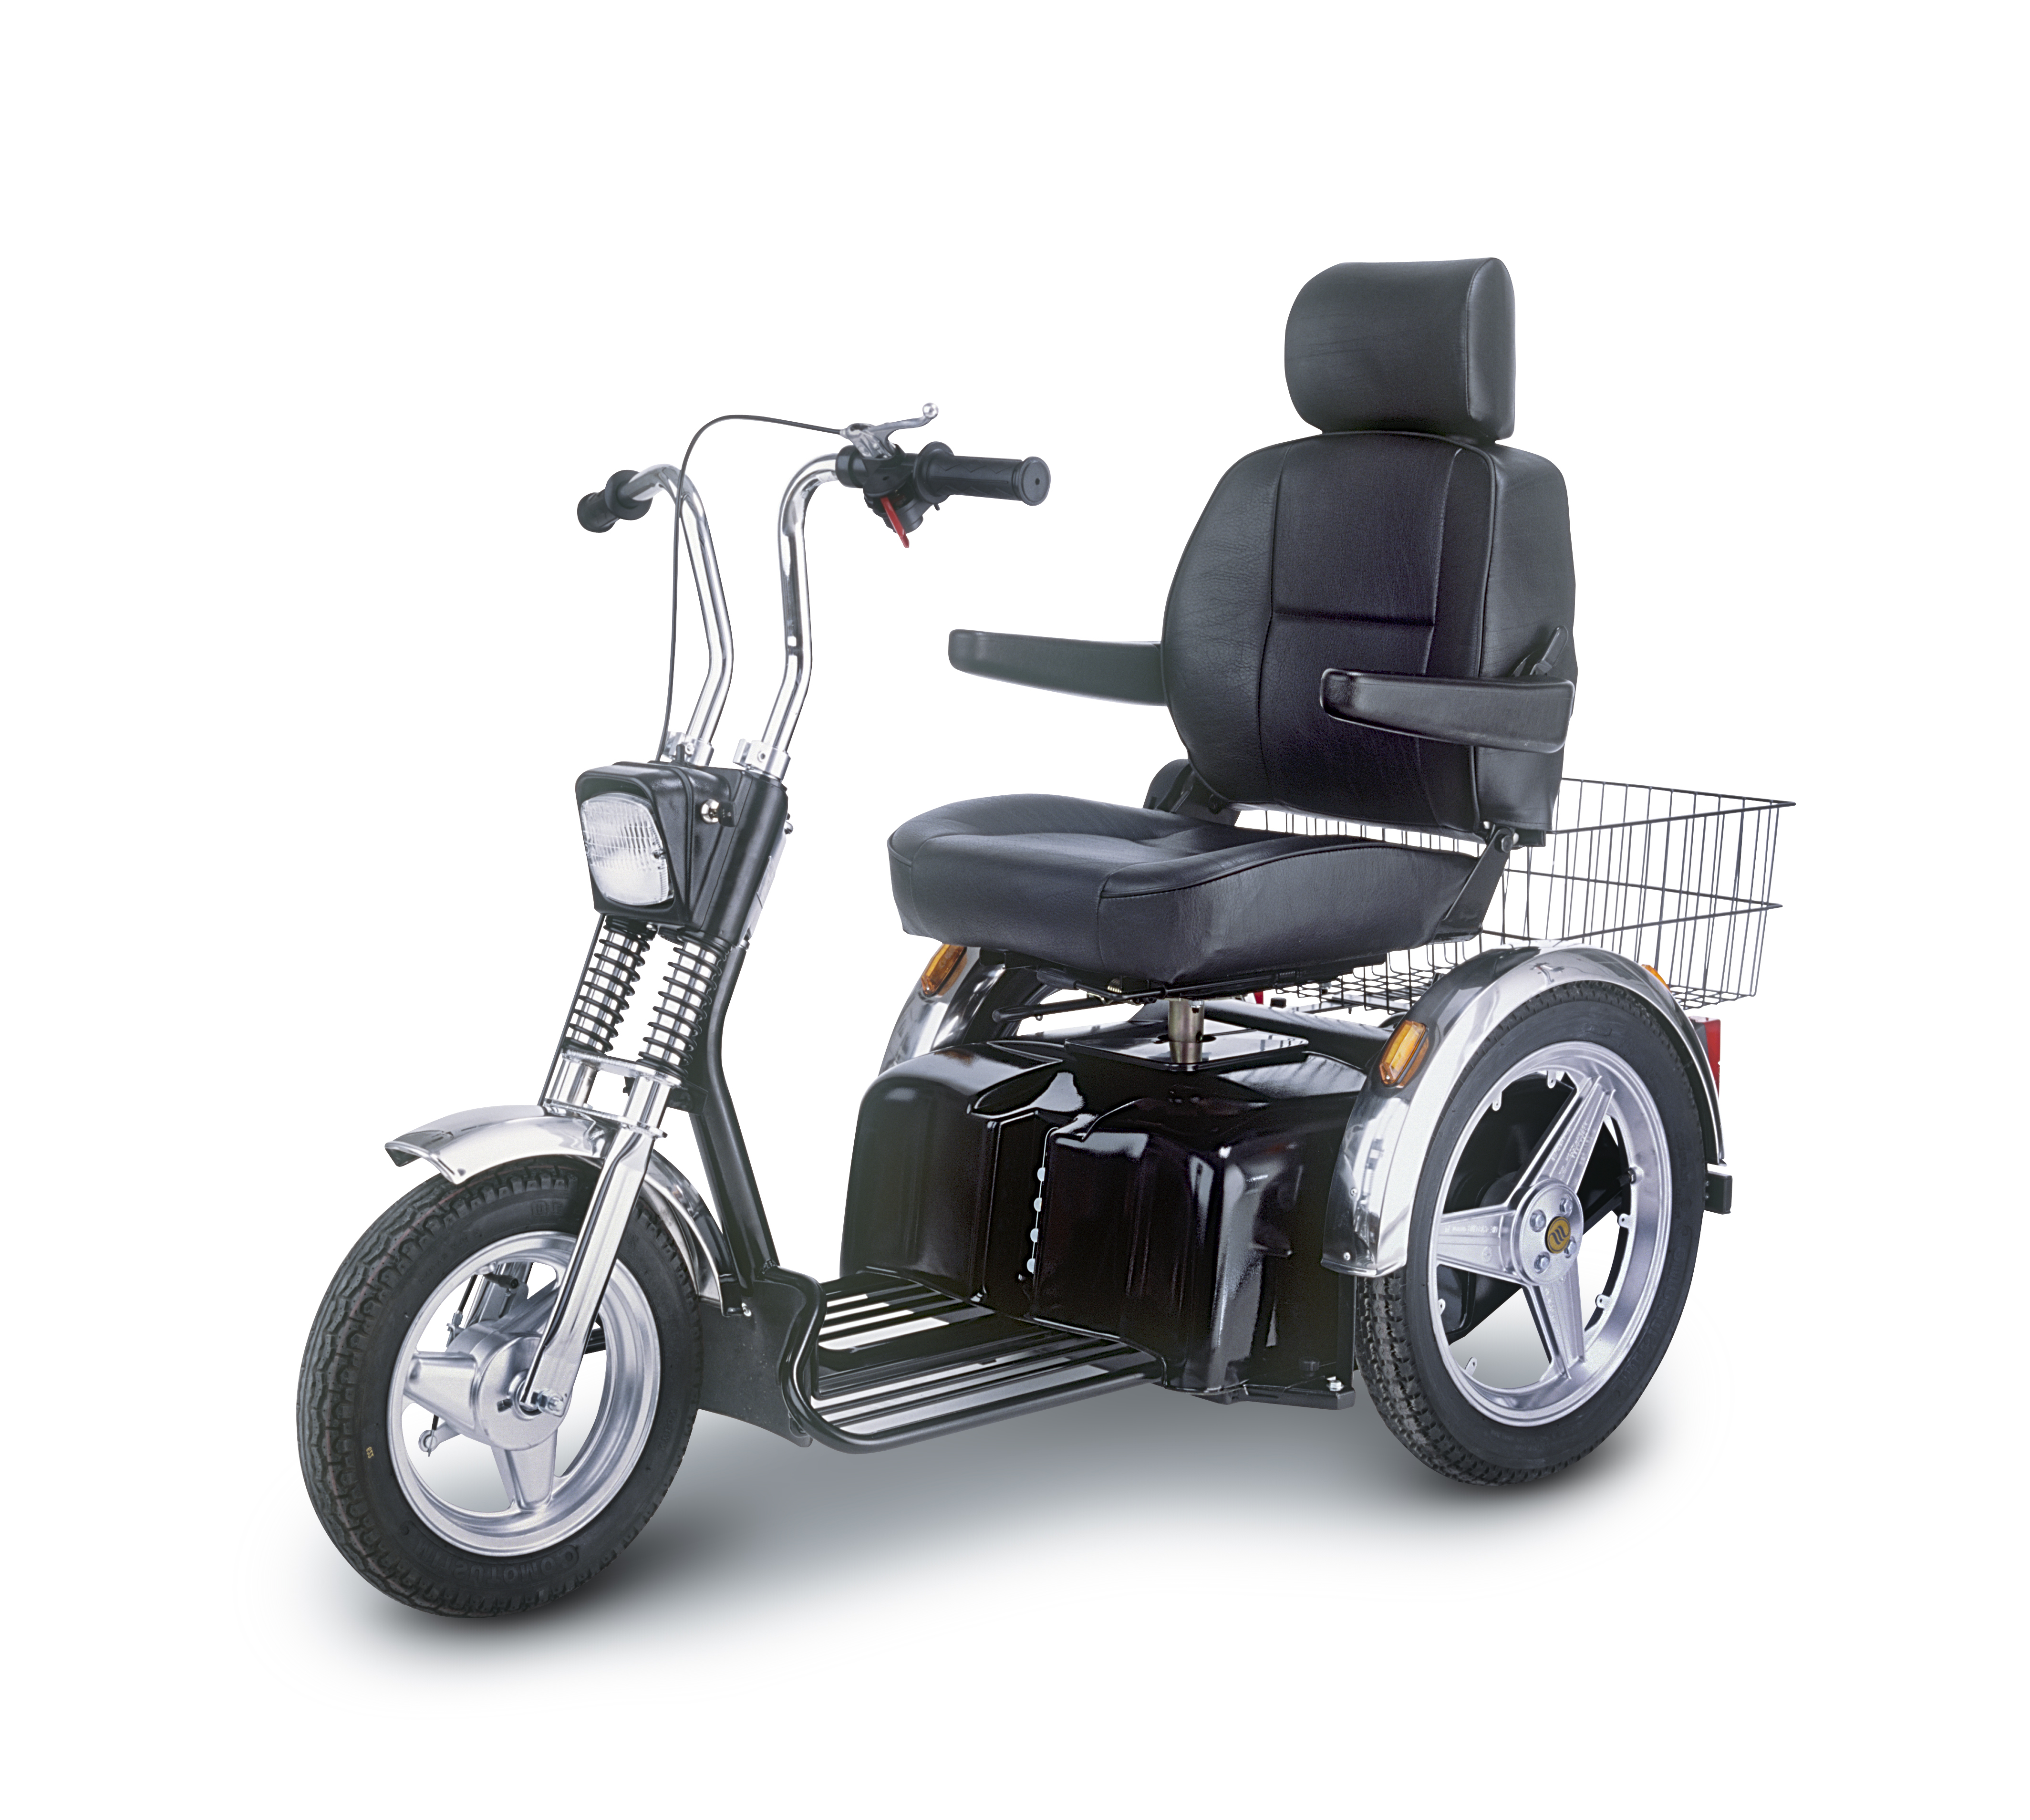 Afikim Sportster SE / Afiscooter SE All-Terrain Mobility Scooter